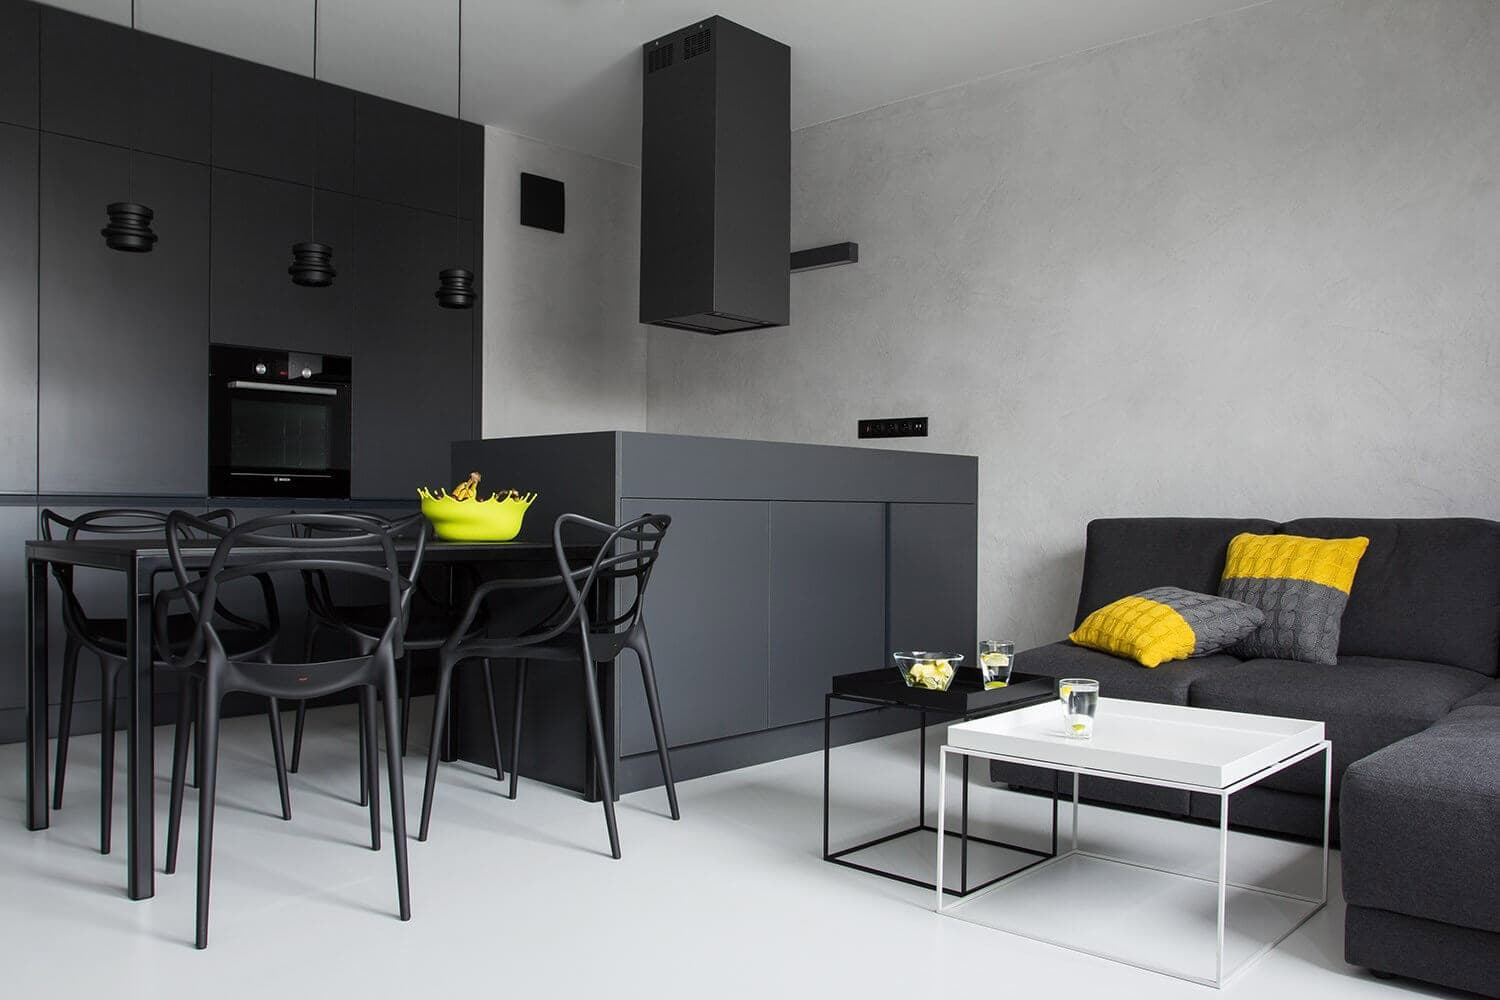 The Use of Monochromatic Interior Design to Create Stunning Interior. Striking black and white combination for hi-tech kitchen